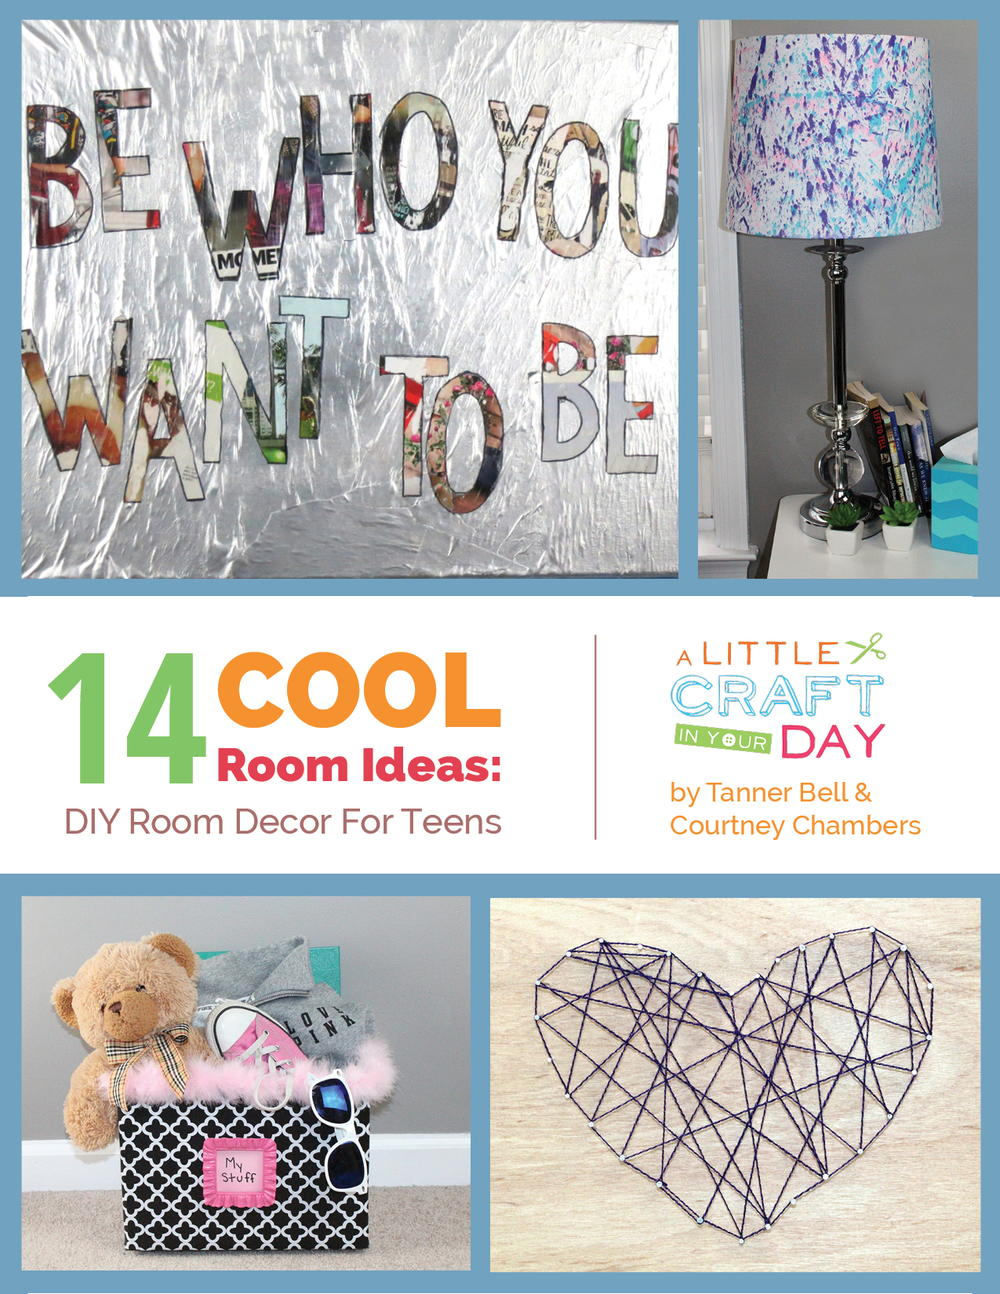 14 Cool Room Ideas DIY Room Decor